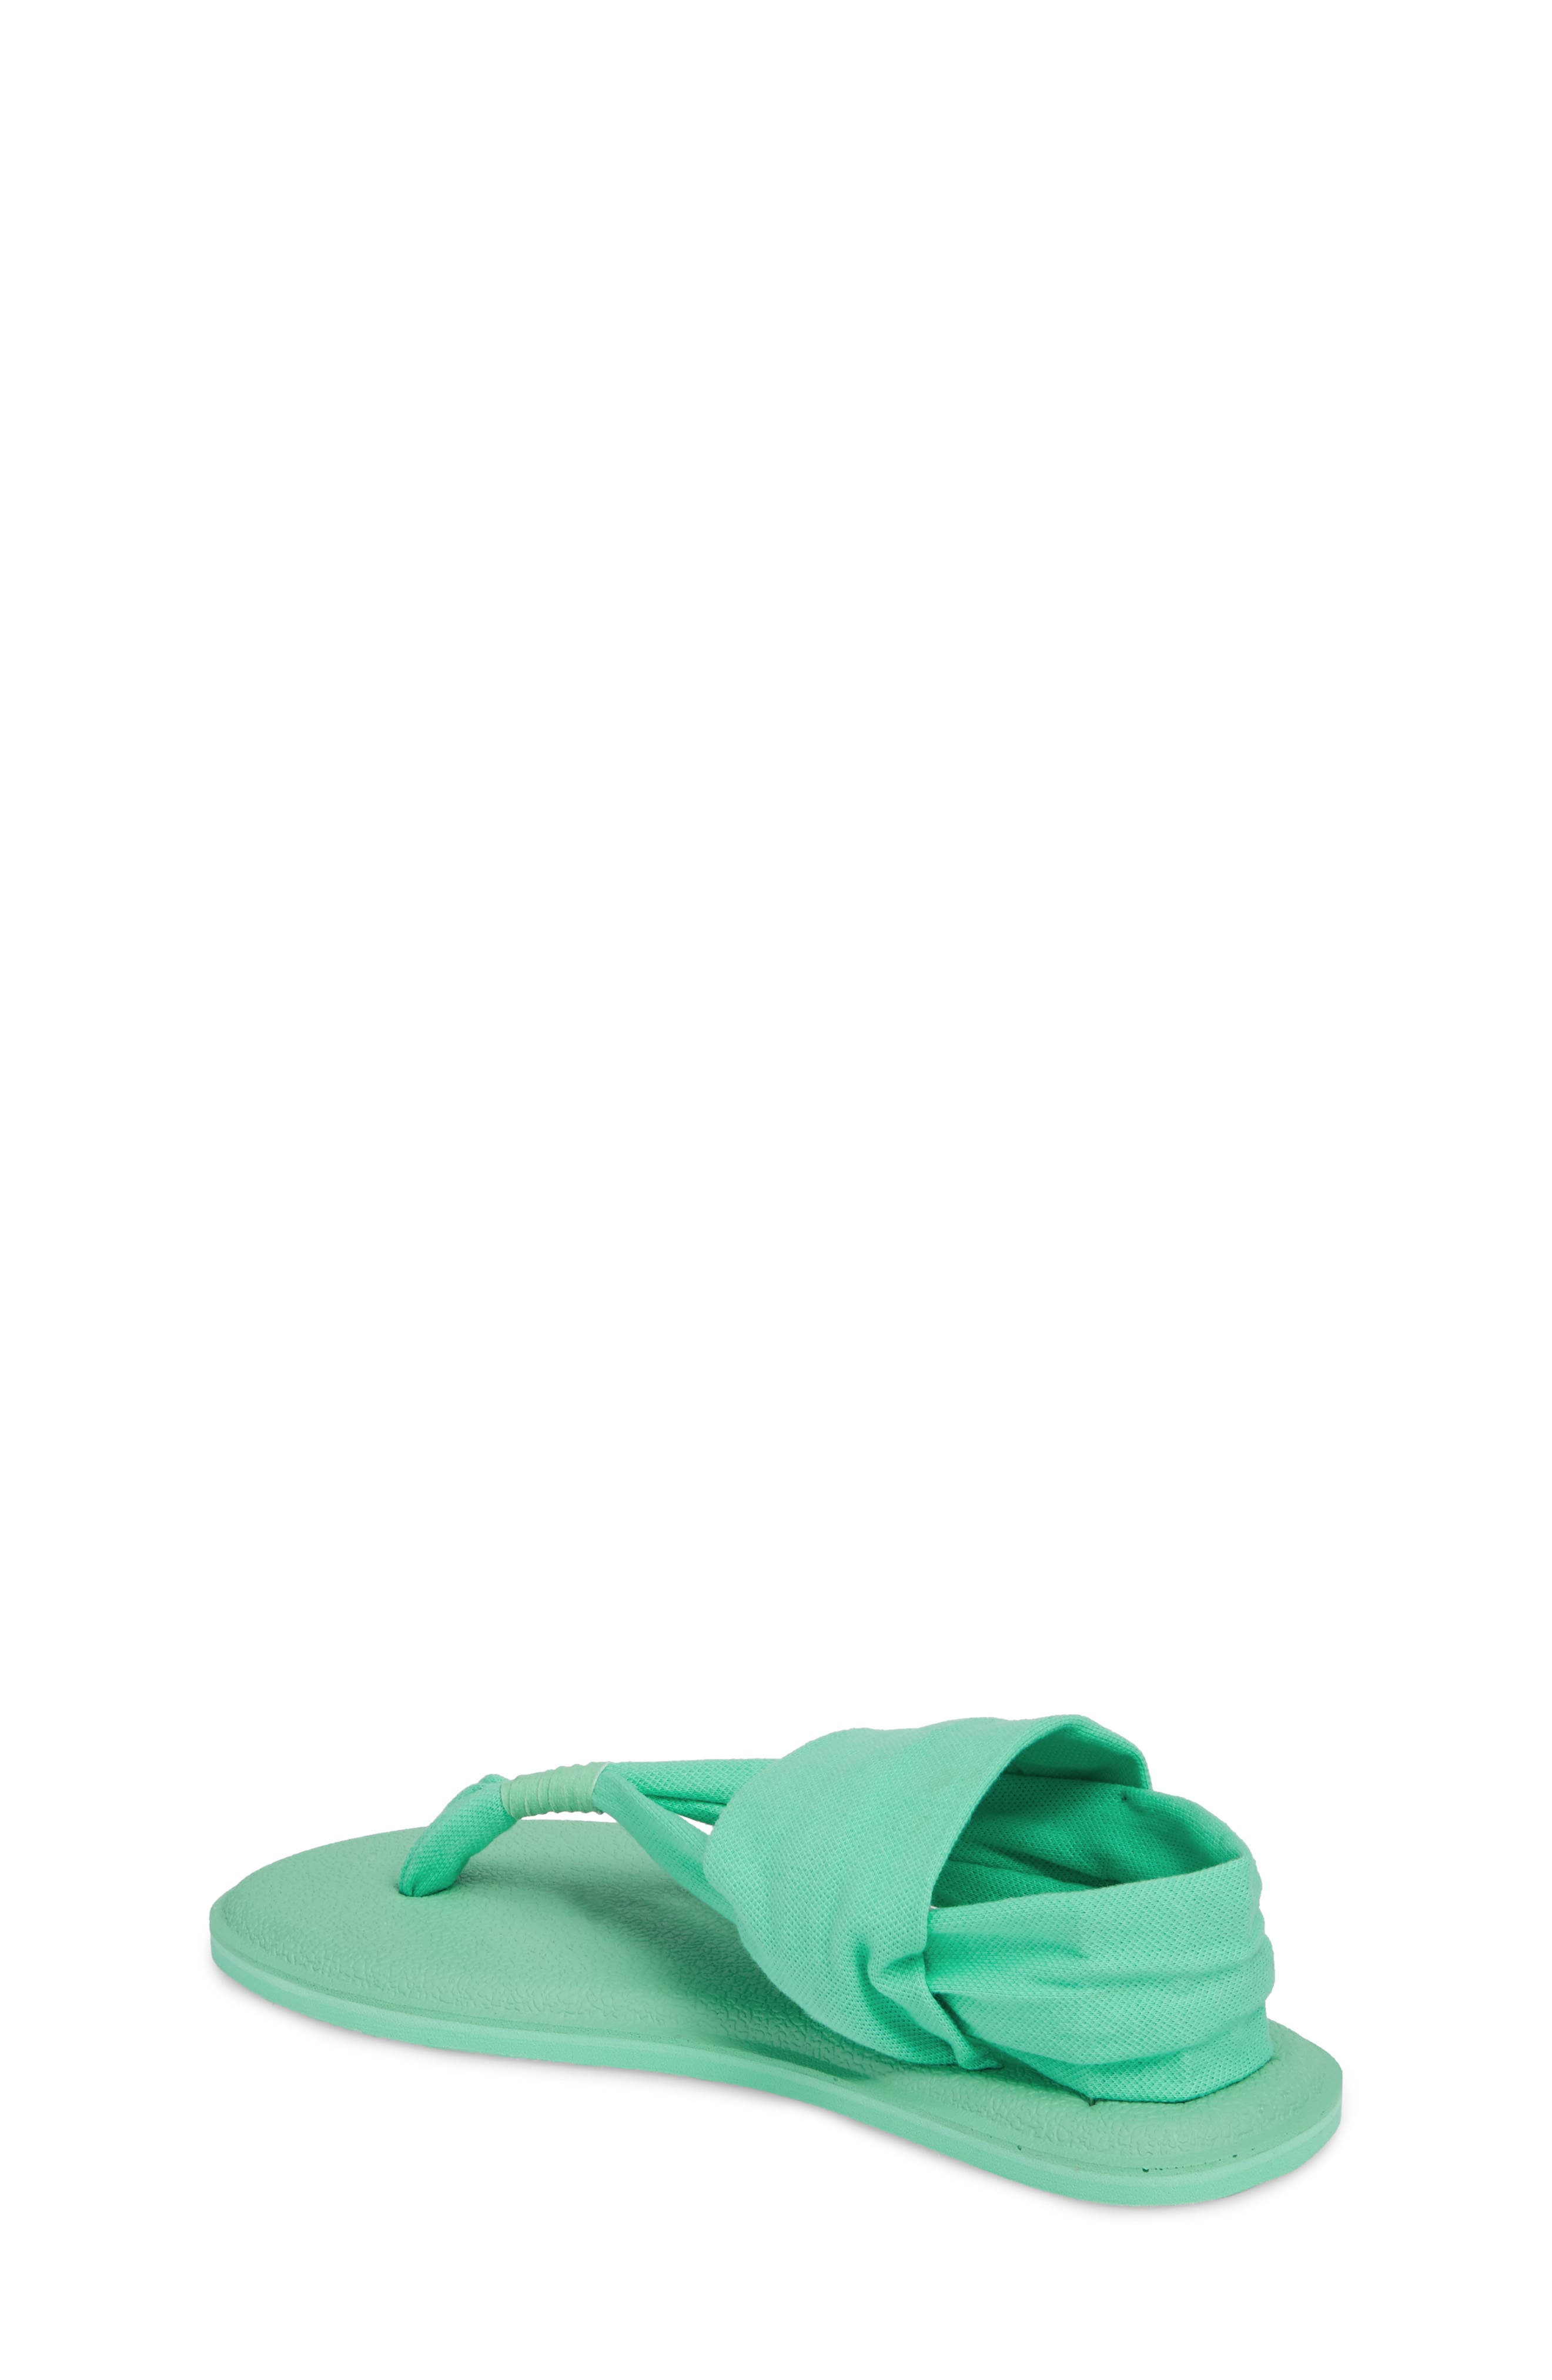 'Yoga Sling Burst' Sandal,                             Alternate thumbnail 2, color,                             305